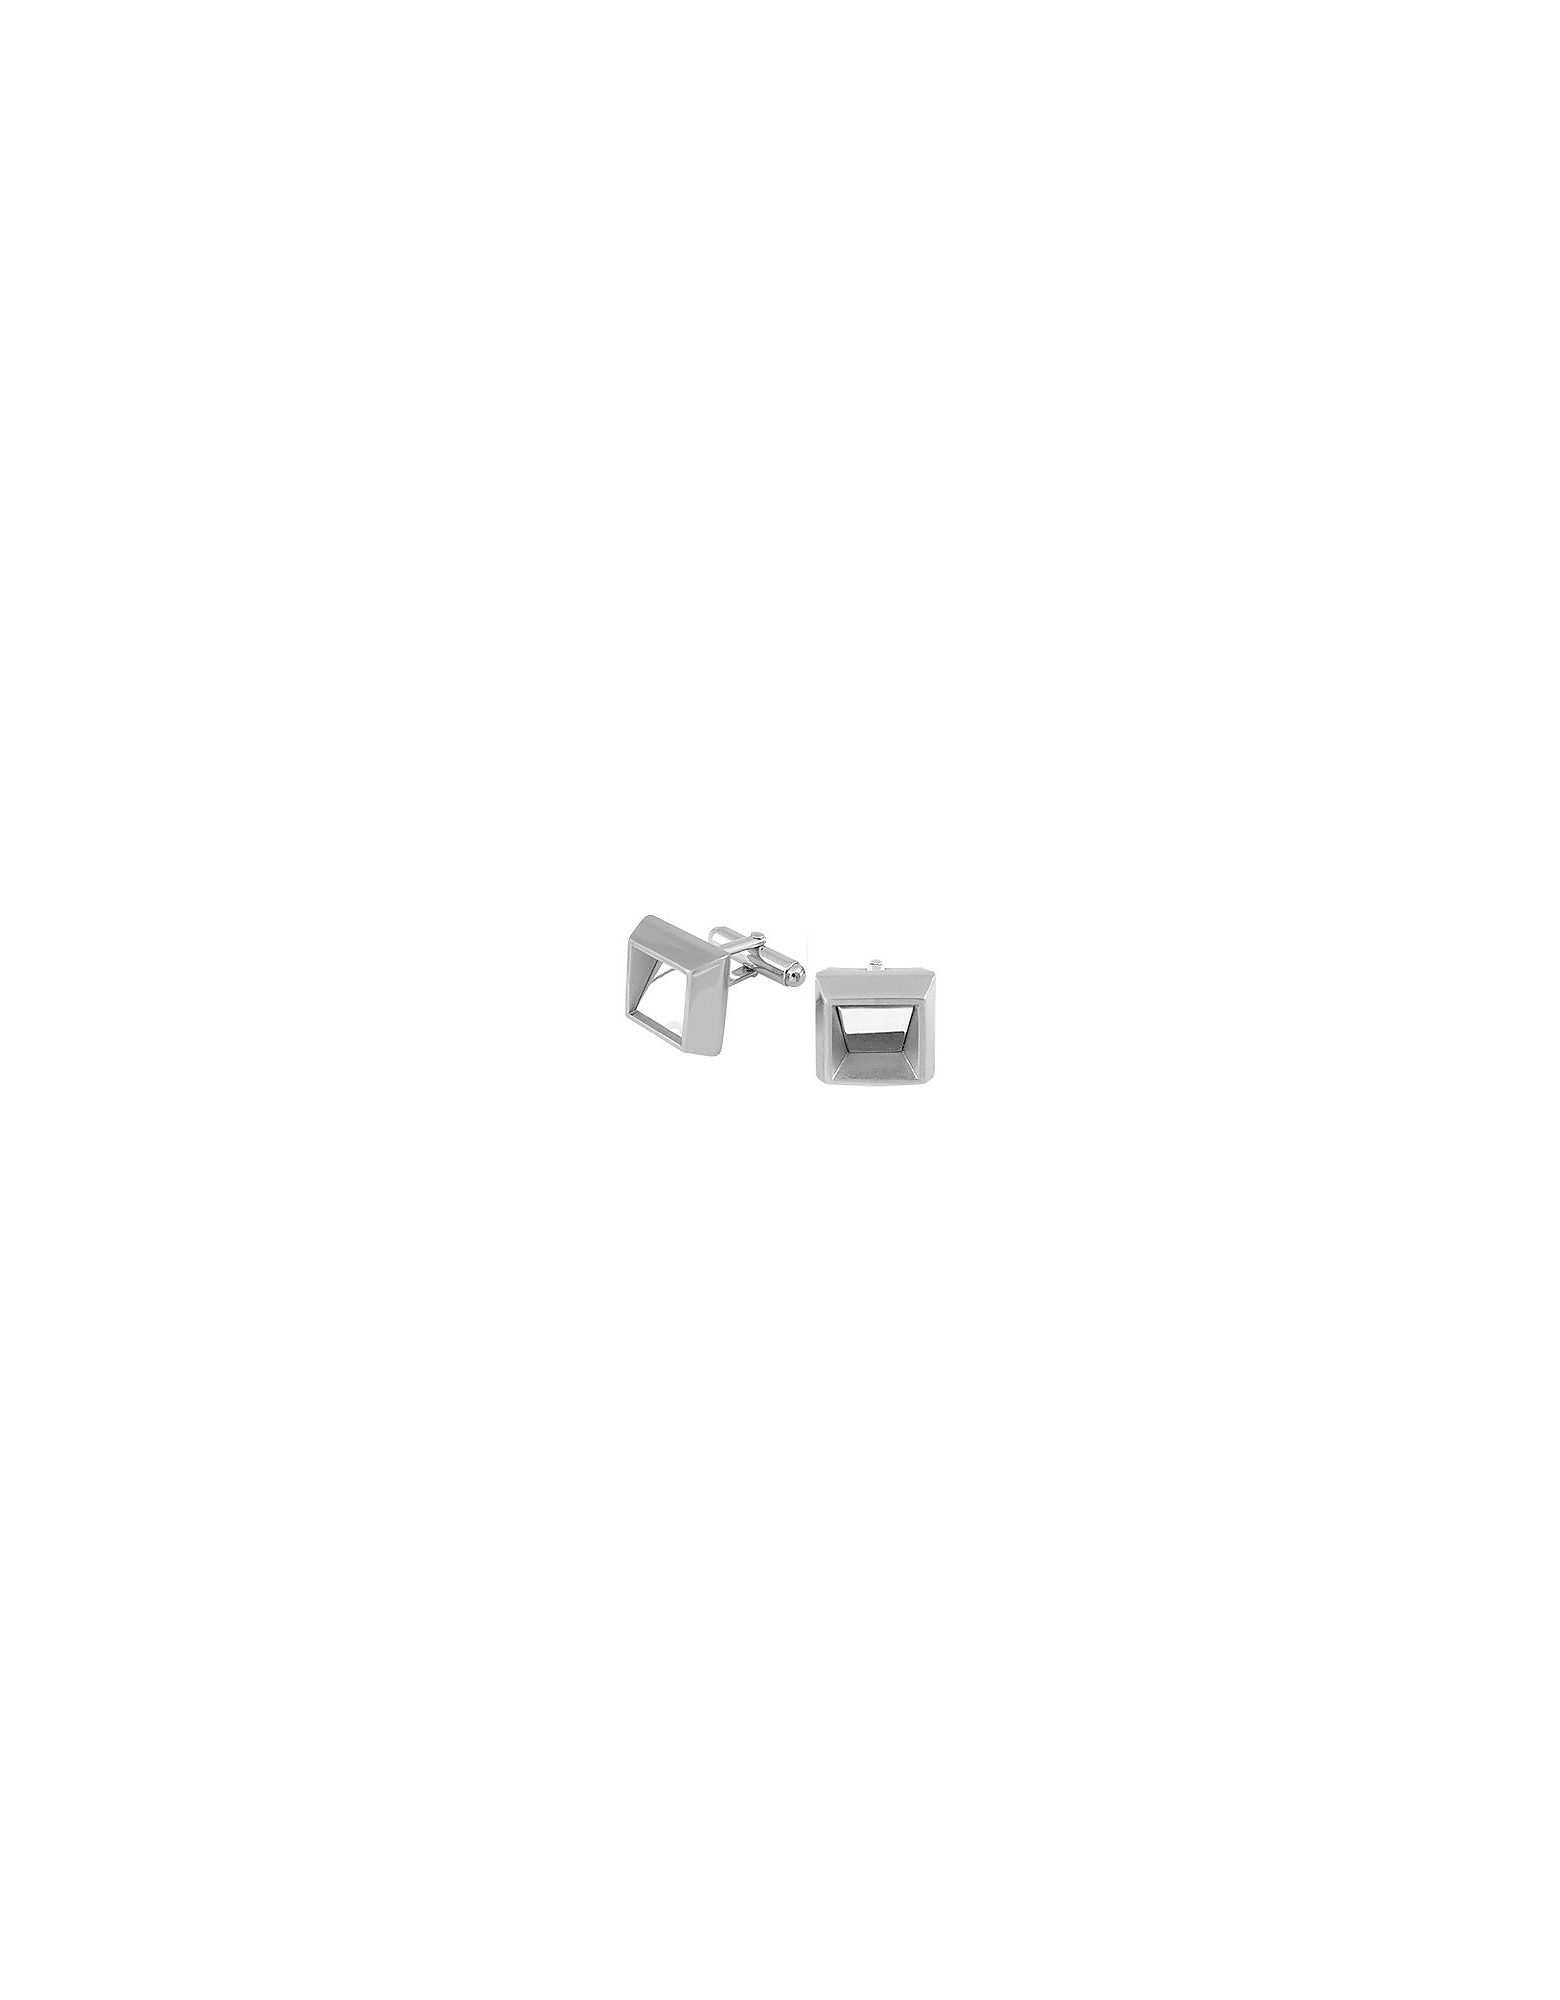 Forzieri Cufflinks, ATH Collection Square Polished Cufflinks